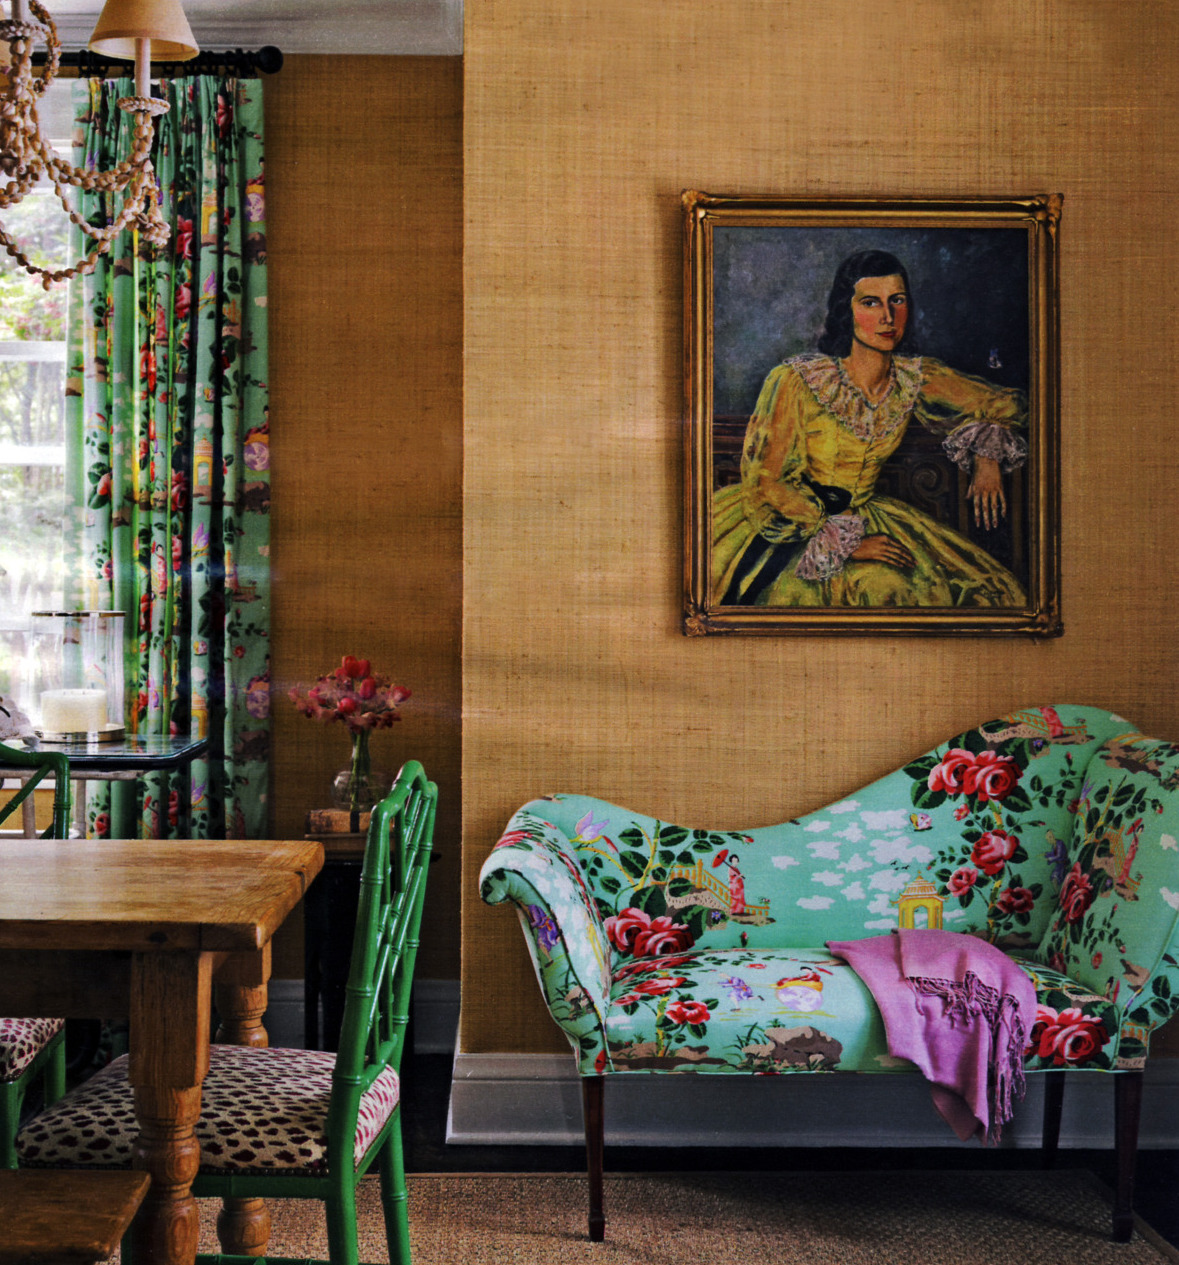 statement sofas - camelback settee upholstered in Scalamandre aqua Chinoiserie chintz - countryliving.com via Atticmag